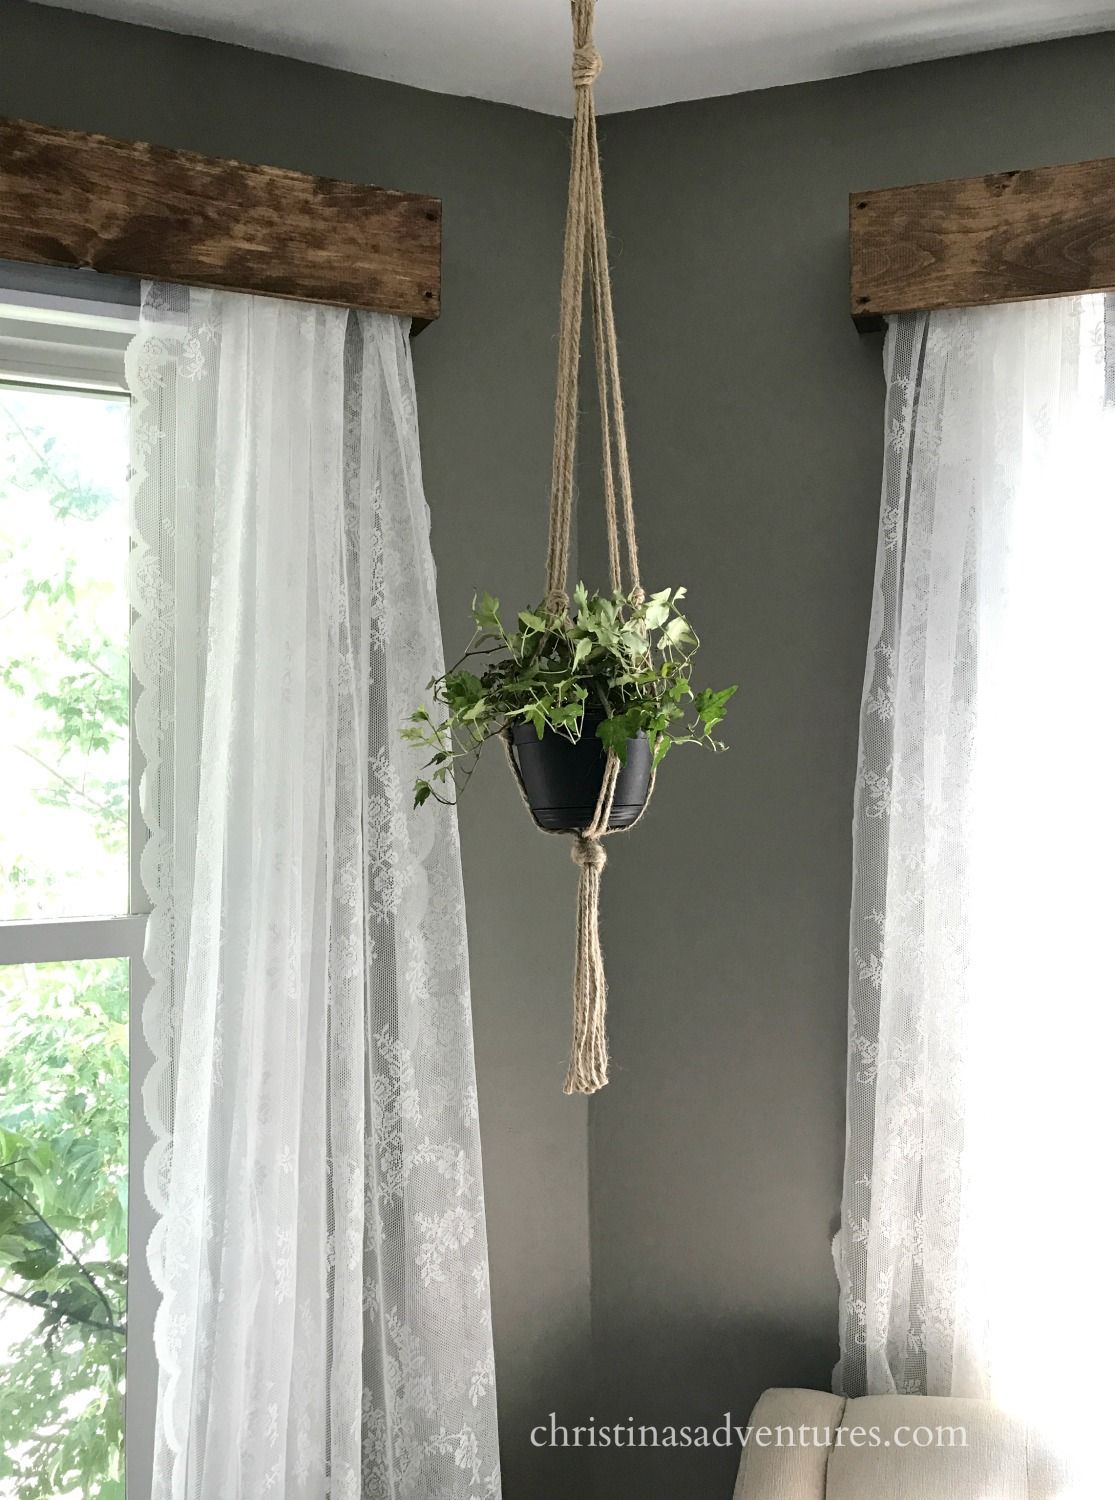 This DIY wood window valance pairs beautifully with lace curtains